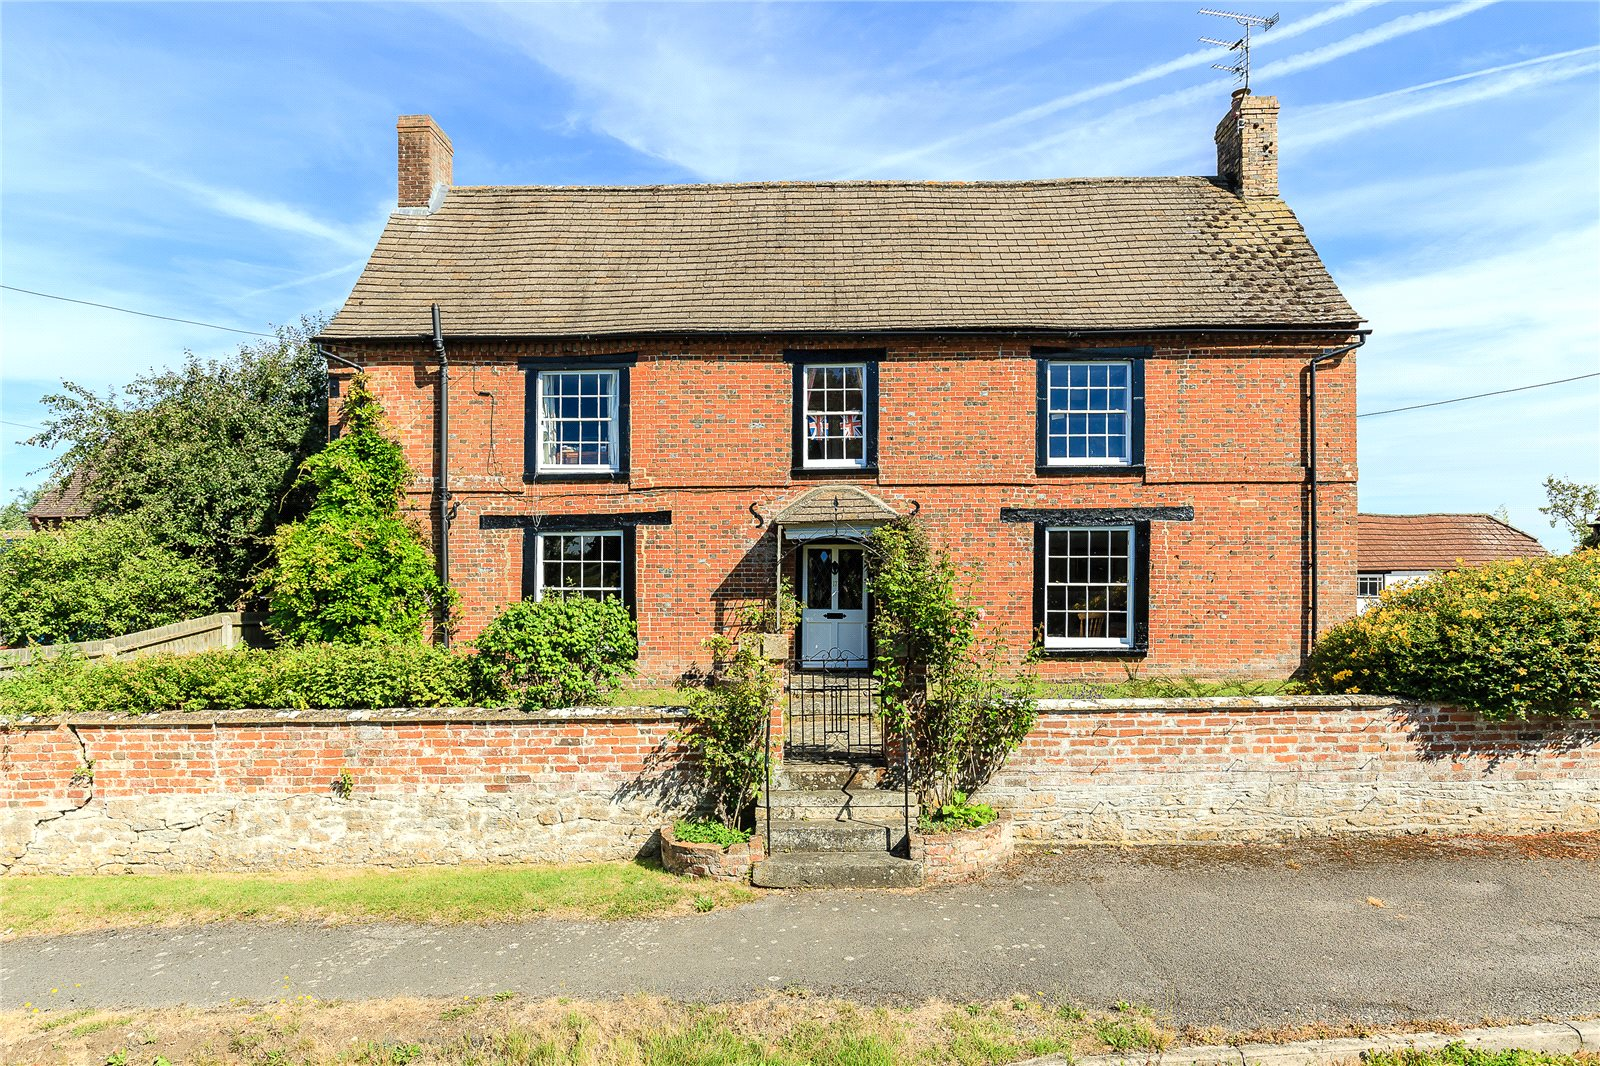 Single Family Home for Sale at Purton Stoke, Swindon, Wiltshire, SN5 Swindon, England